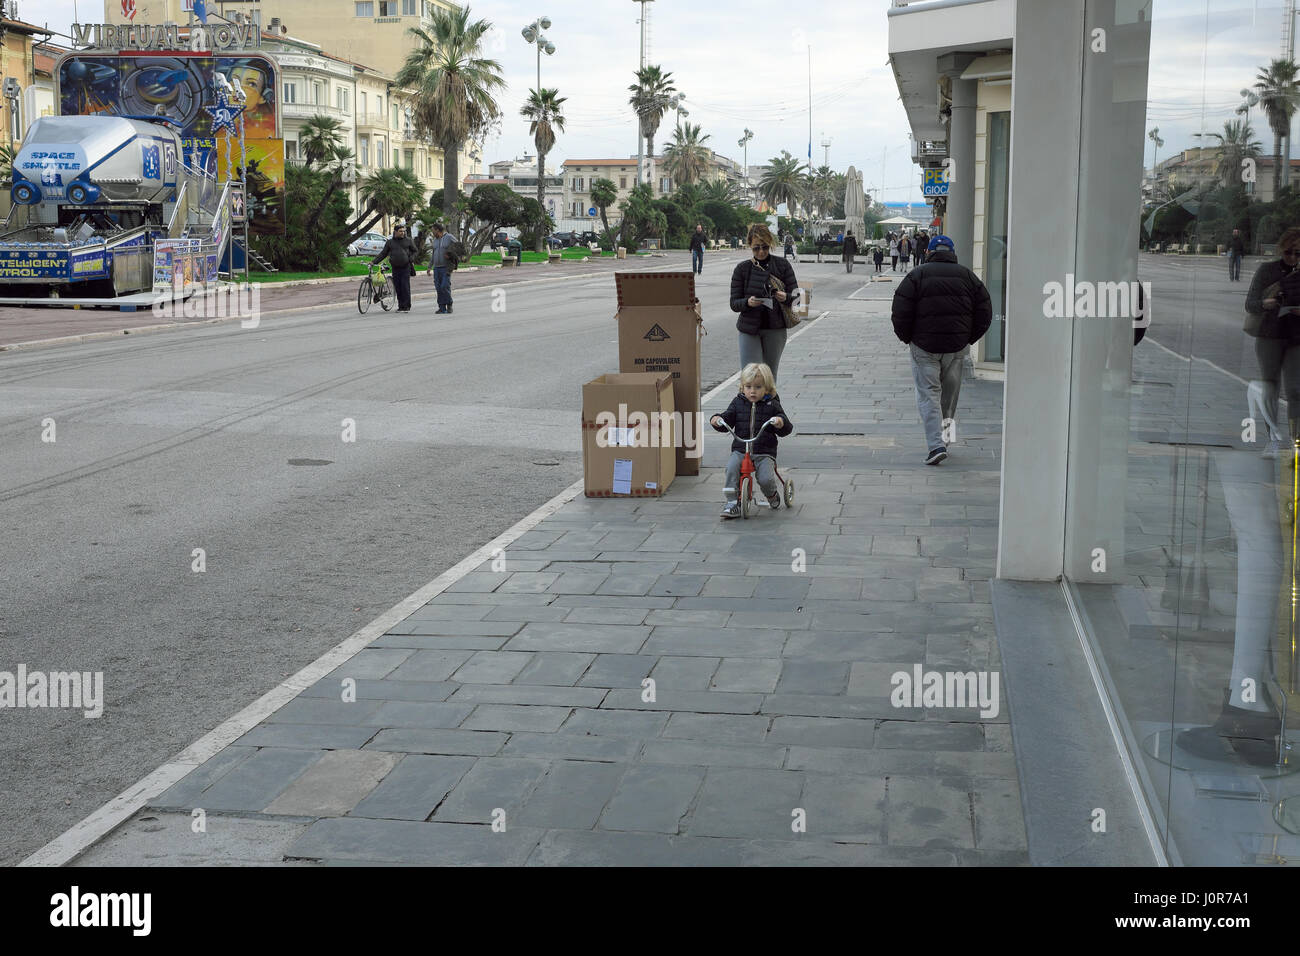 Mother and son - Child cycling on a tricycle and looking at the camera on Viareggio promenade, Tuscany, Italy, Europe - Stock Image